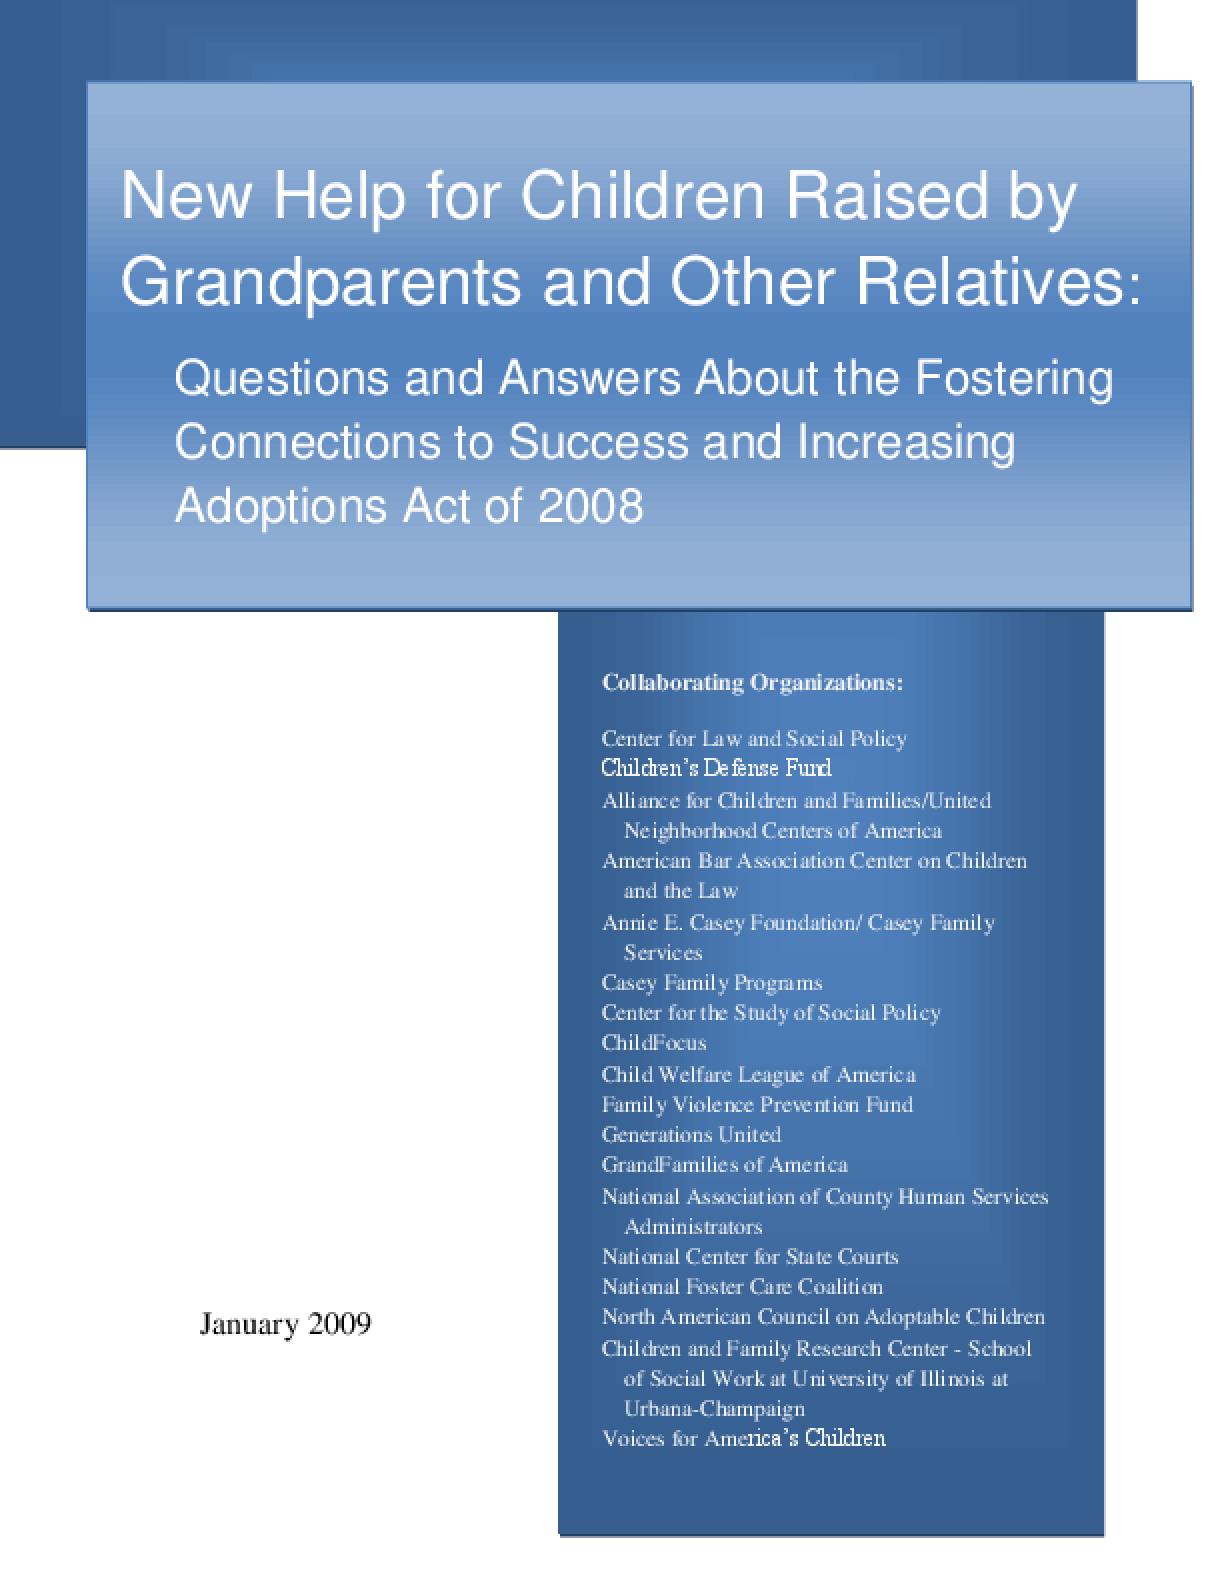 New Help for Children Raised by Grandparents and Other Relatives: Questions and Answers About the Fostering Connections to Success and Increasing Adoptions Act of 2008